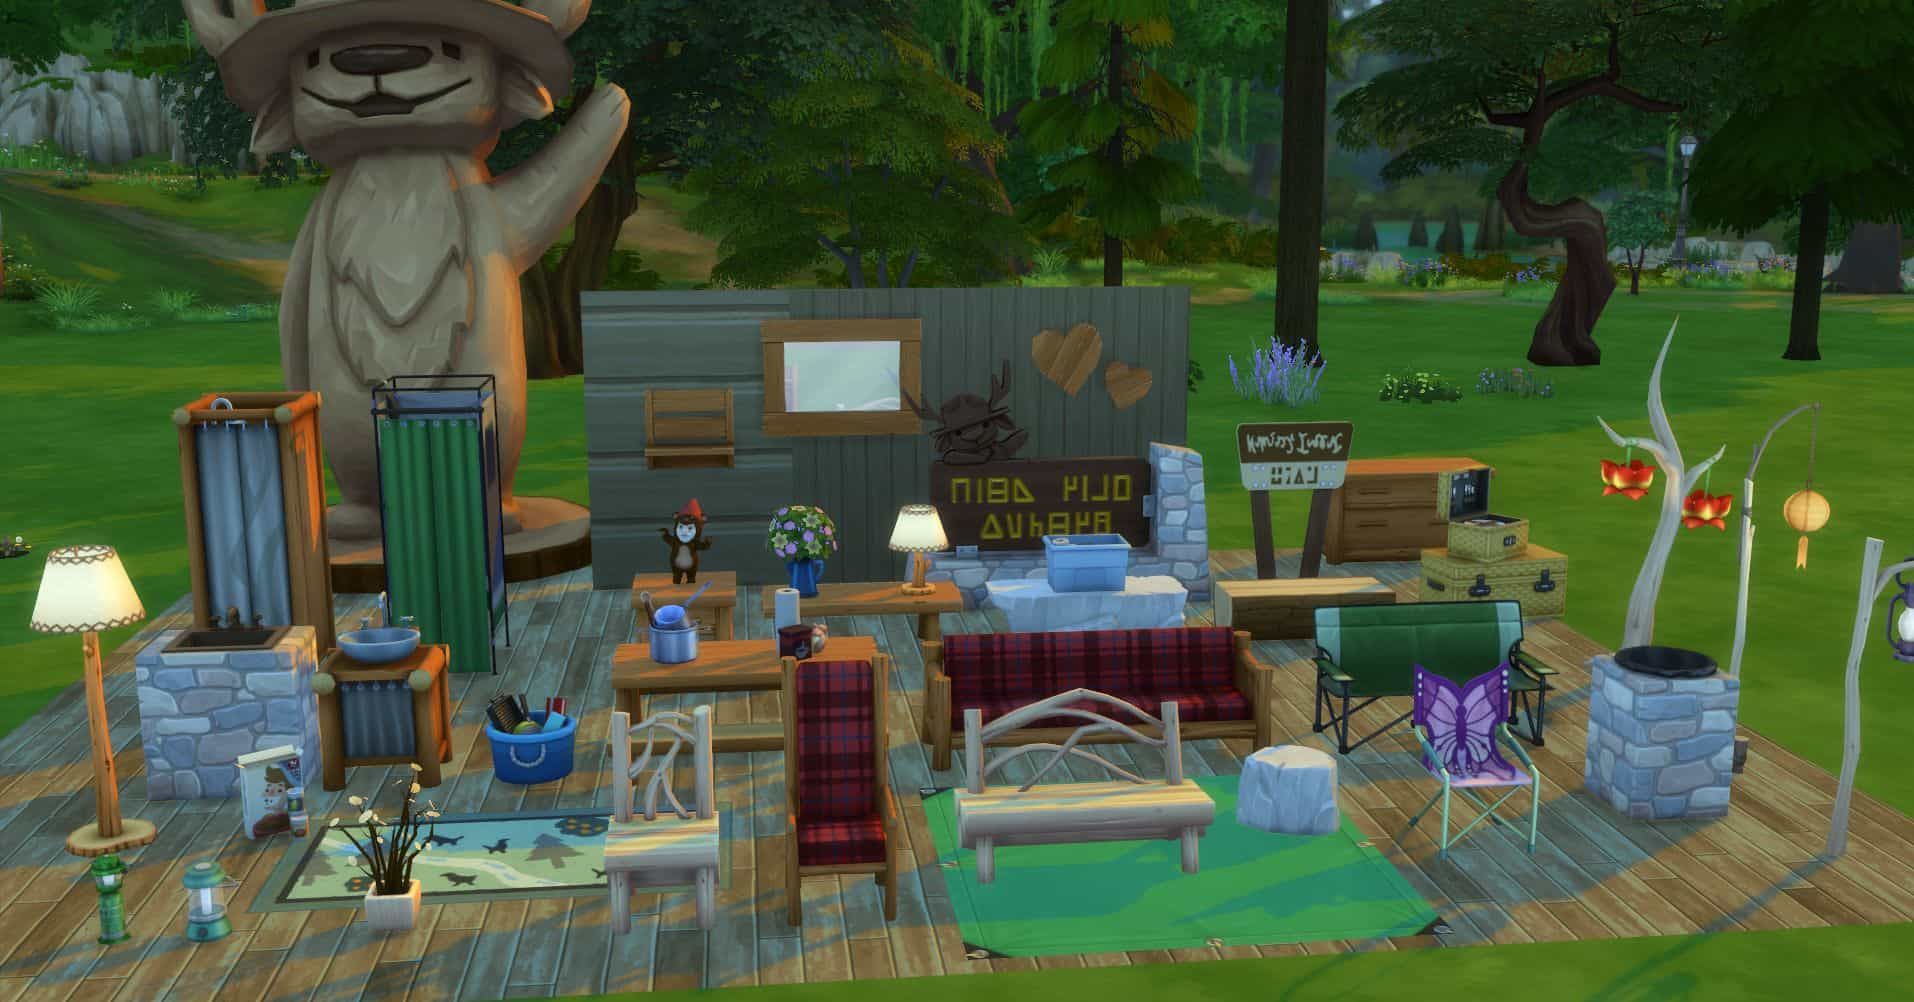 The Sims 4 Outdoor Retreat Free download game